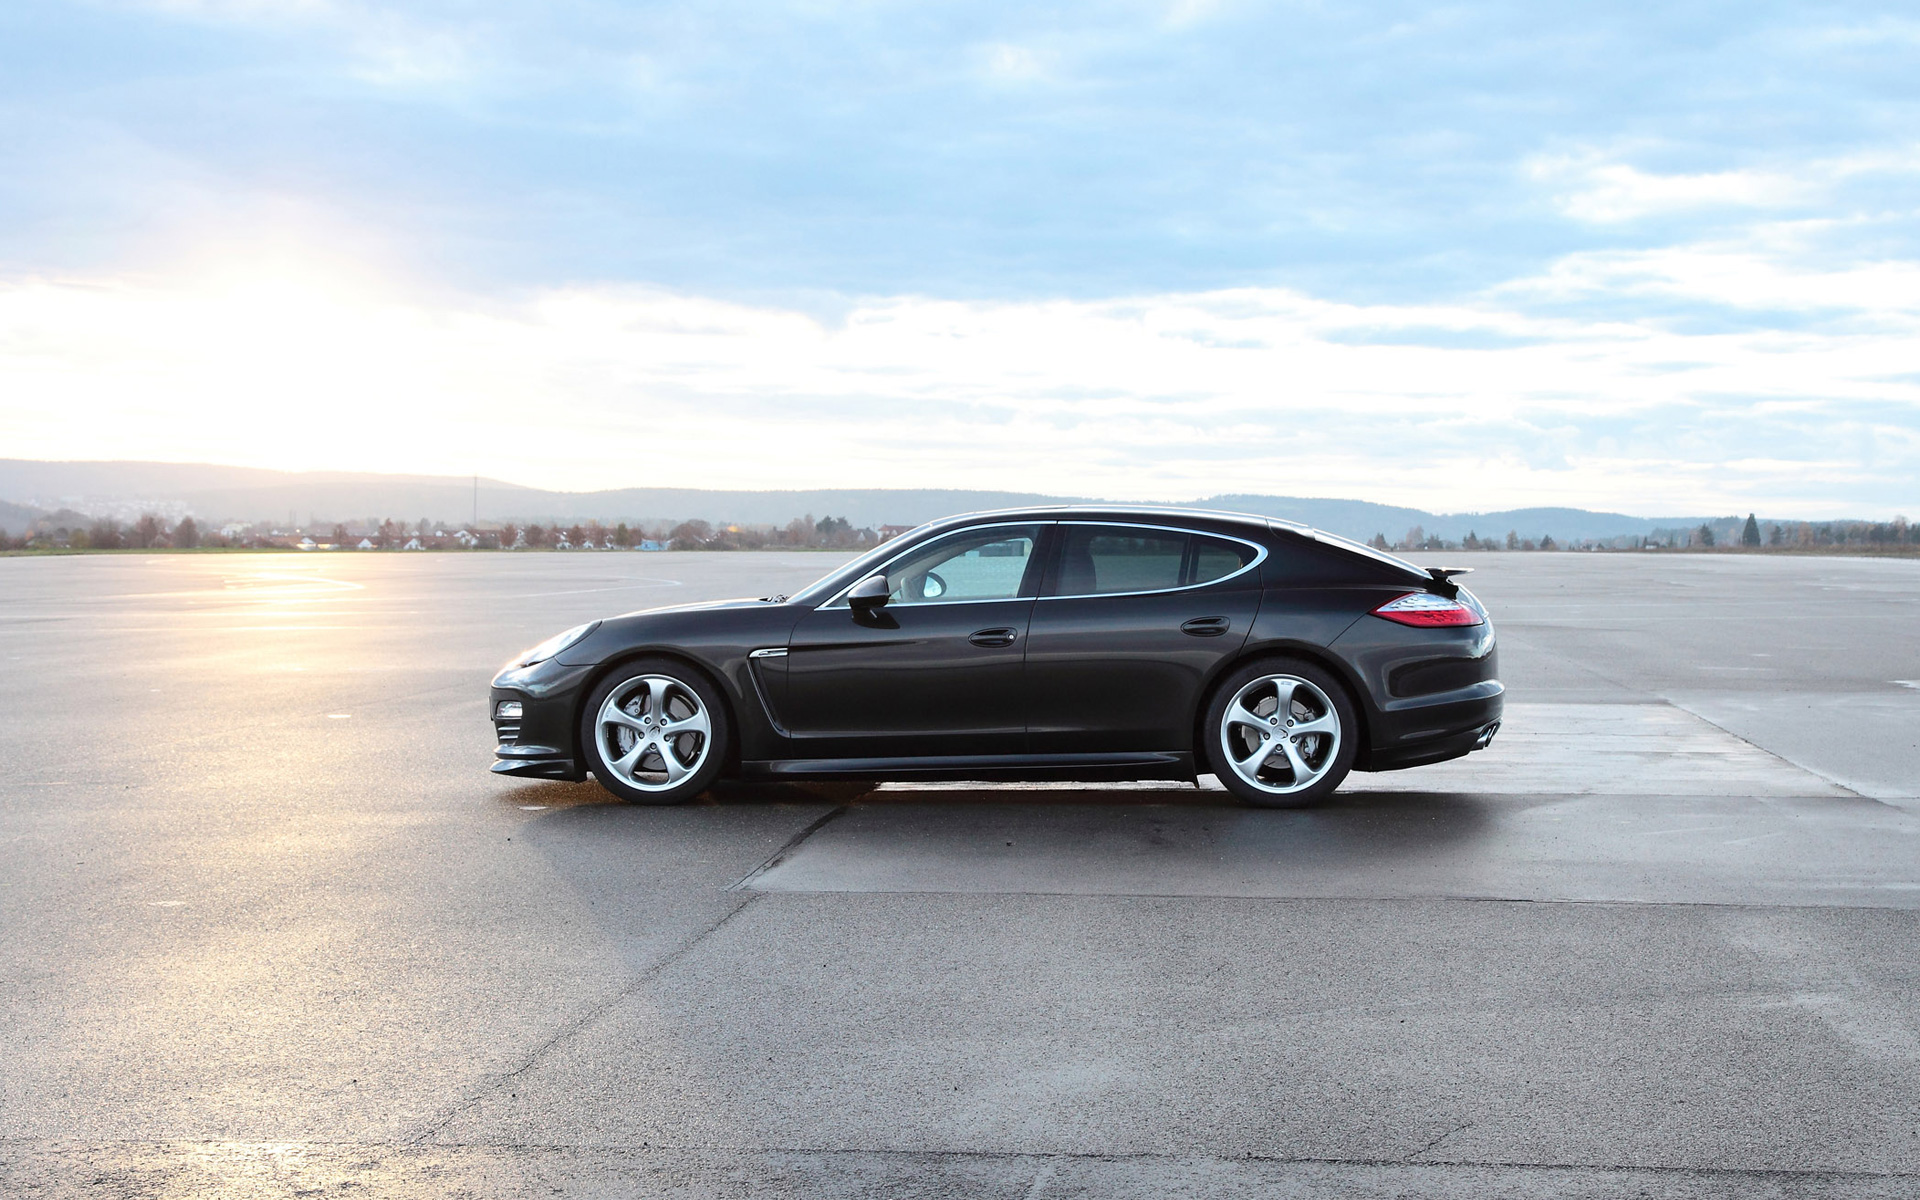 Porsche Techart Panamera Wallpaper HD Car Wallpapers 1920x1200